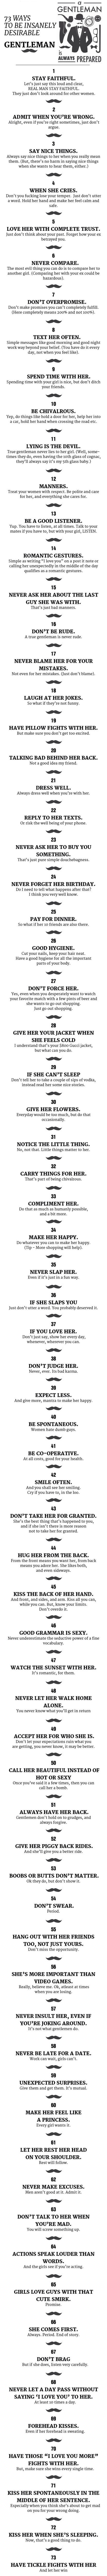 The 73 Golden Rules On How To Be The Insanely Desirable Gentleman